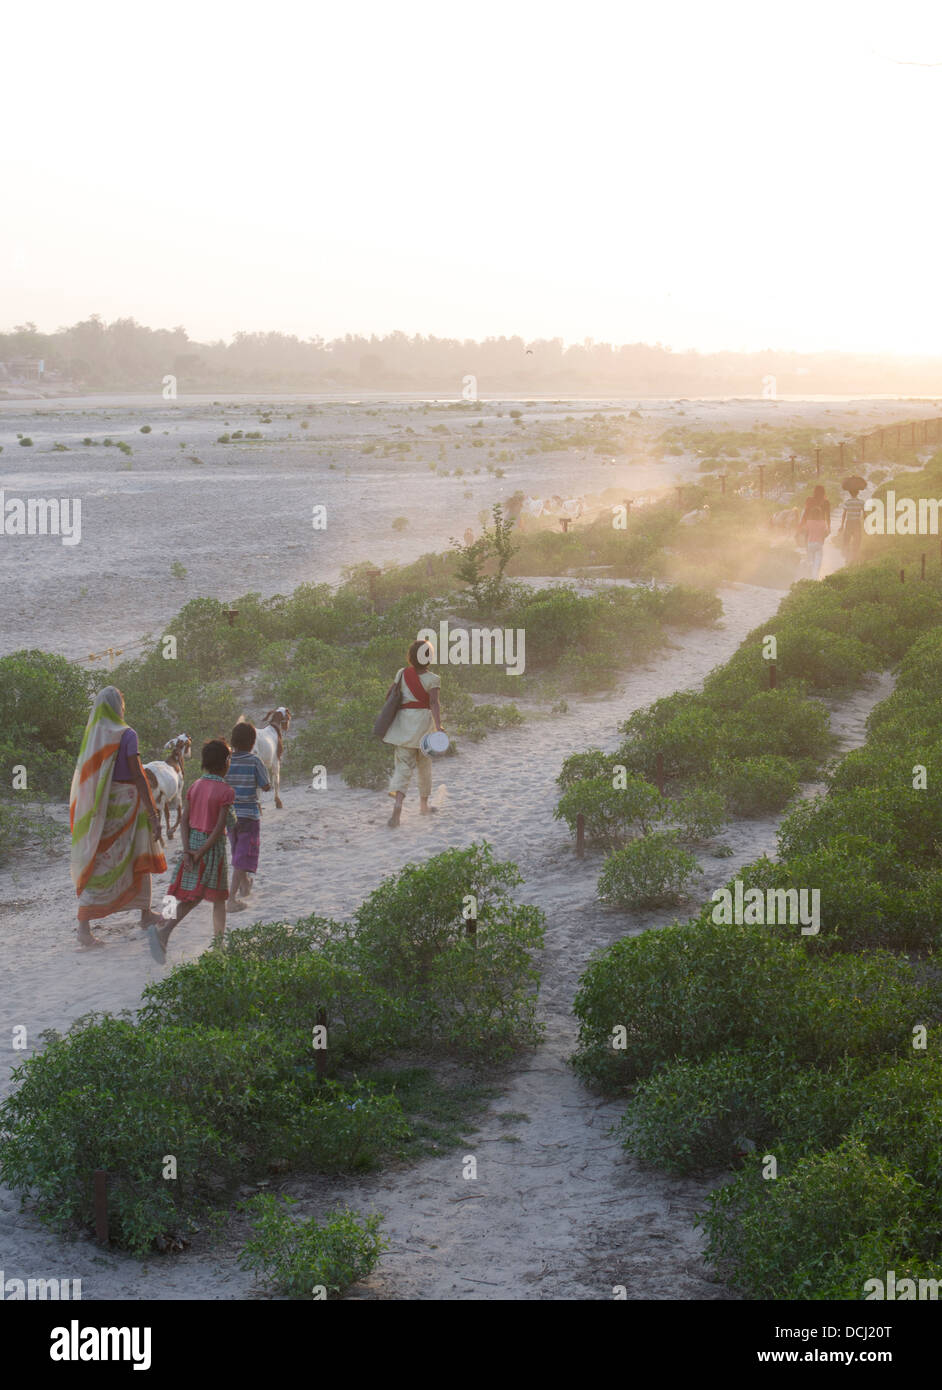 Indian woman and children walk along the banks of the Yamuna River at dusk / twilight. Agra, India - Stock Image